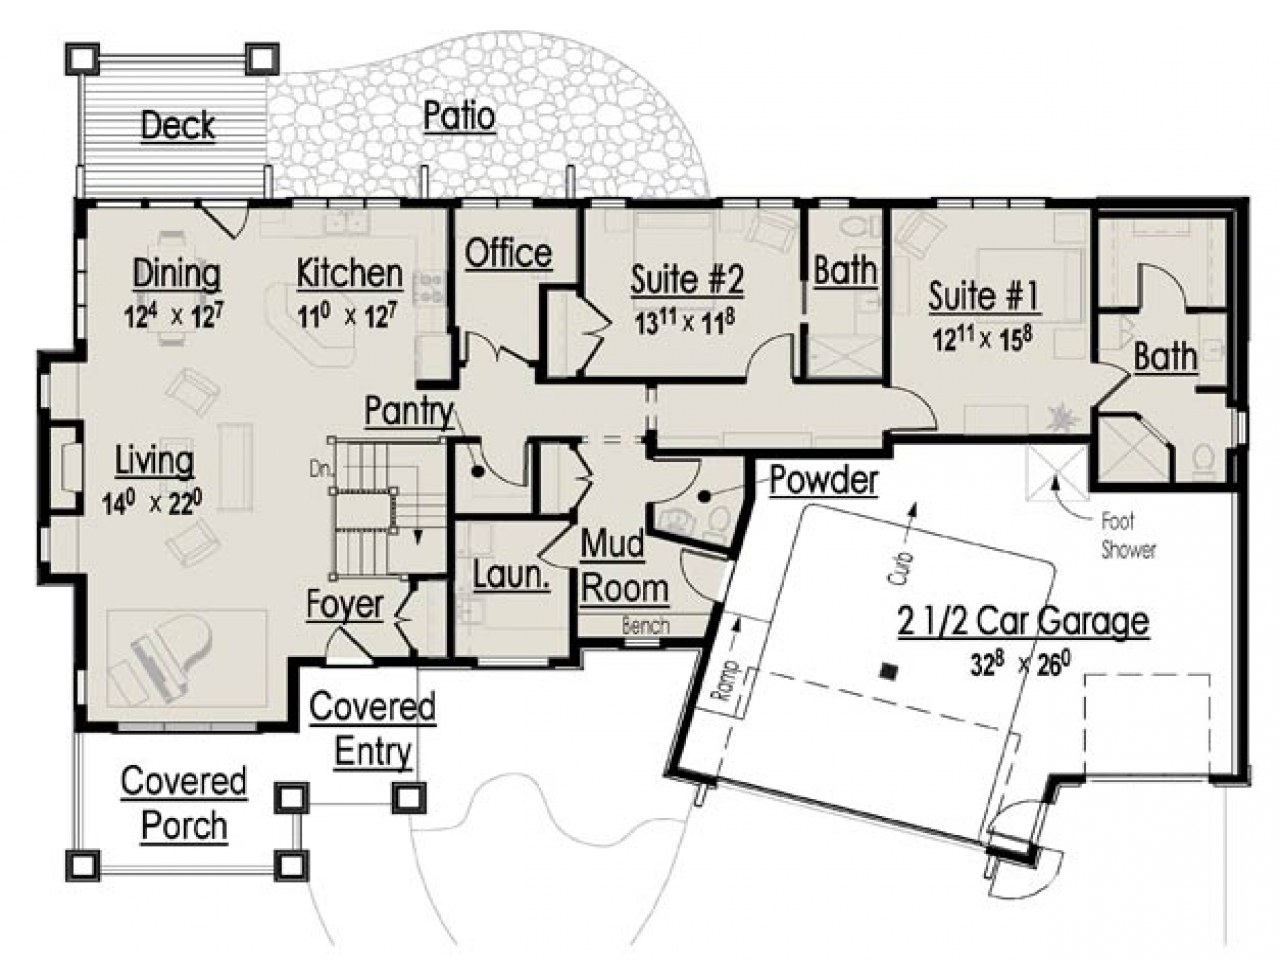 Retirement Home Design Plans Bedroom Floor